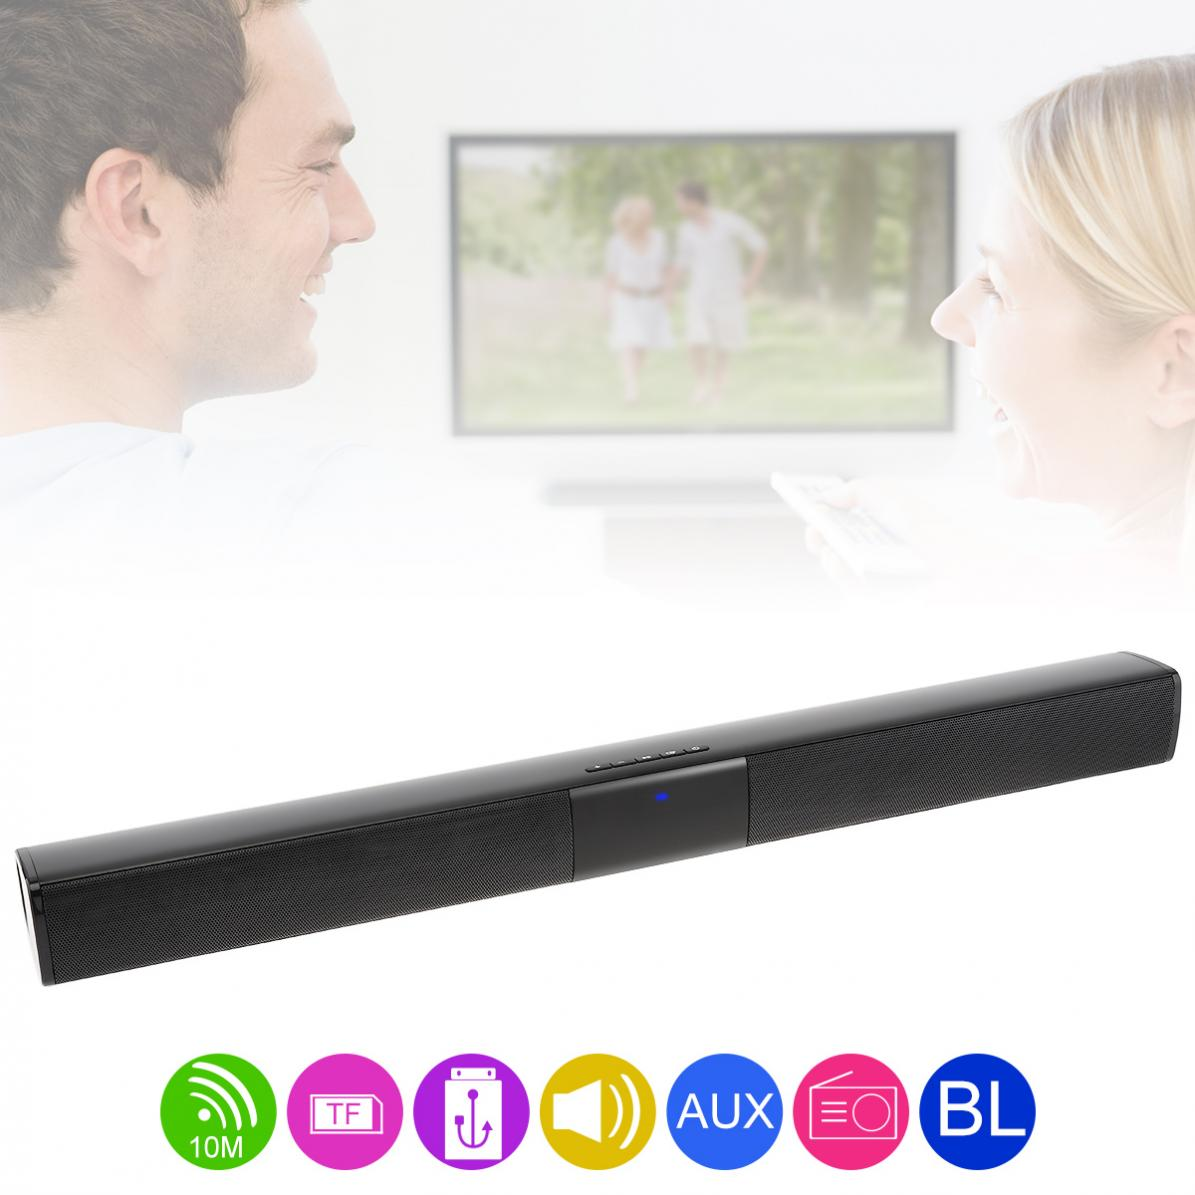 Home Theater Bluetooth Soundbar Altoparlante con 4 Gamma Completa Corni/3.5 millimetri di Ingresso Audio/Micro cavo di Ricarica per la TV /PC/Smartphone-in Soundbar da Elettronica di consumo su AliExpress - 11.11_Doppio 11Giorno dei single 1